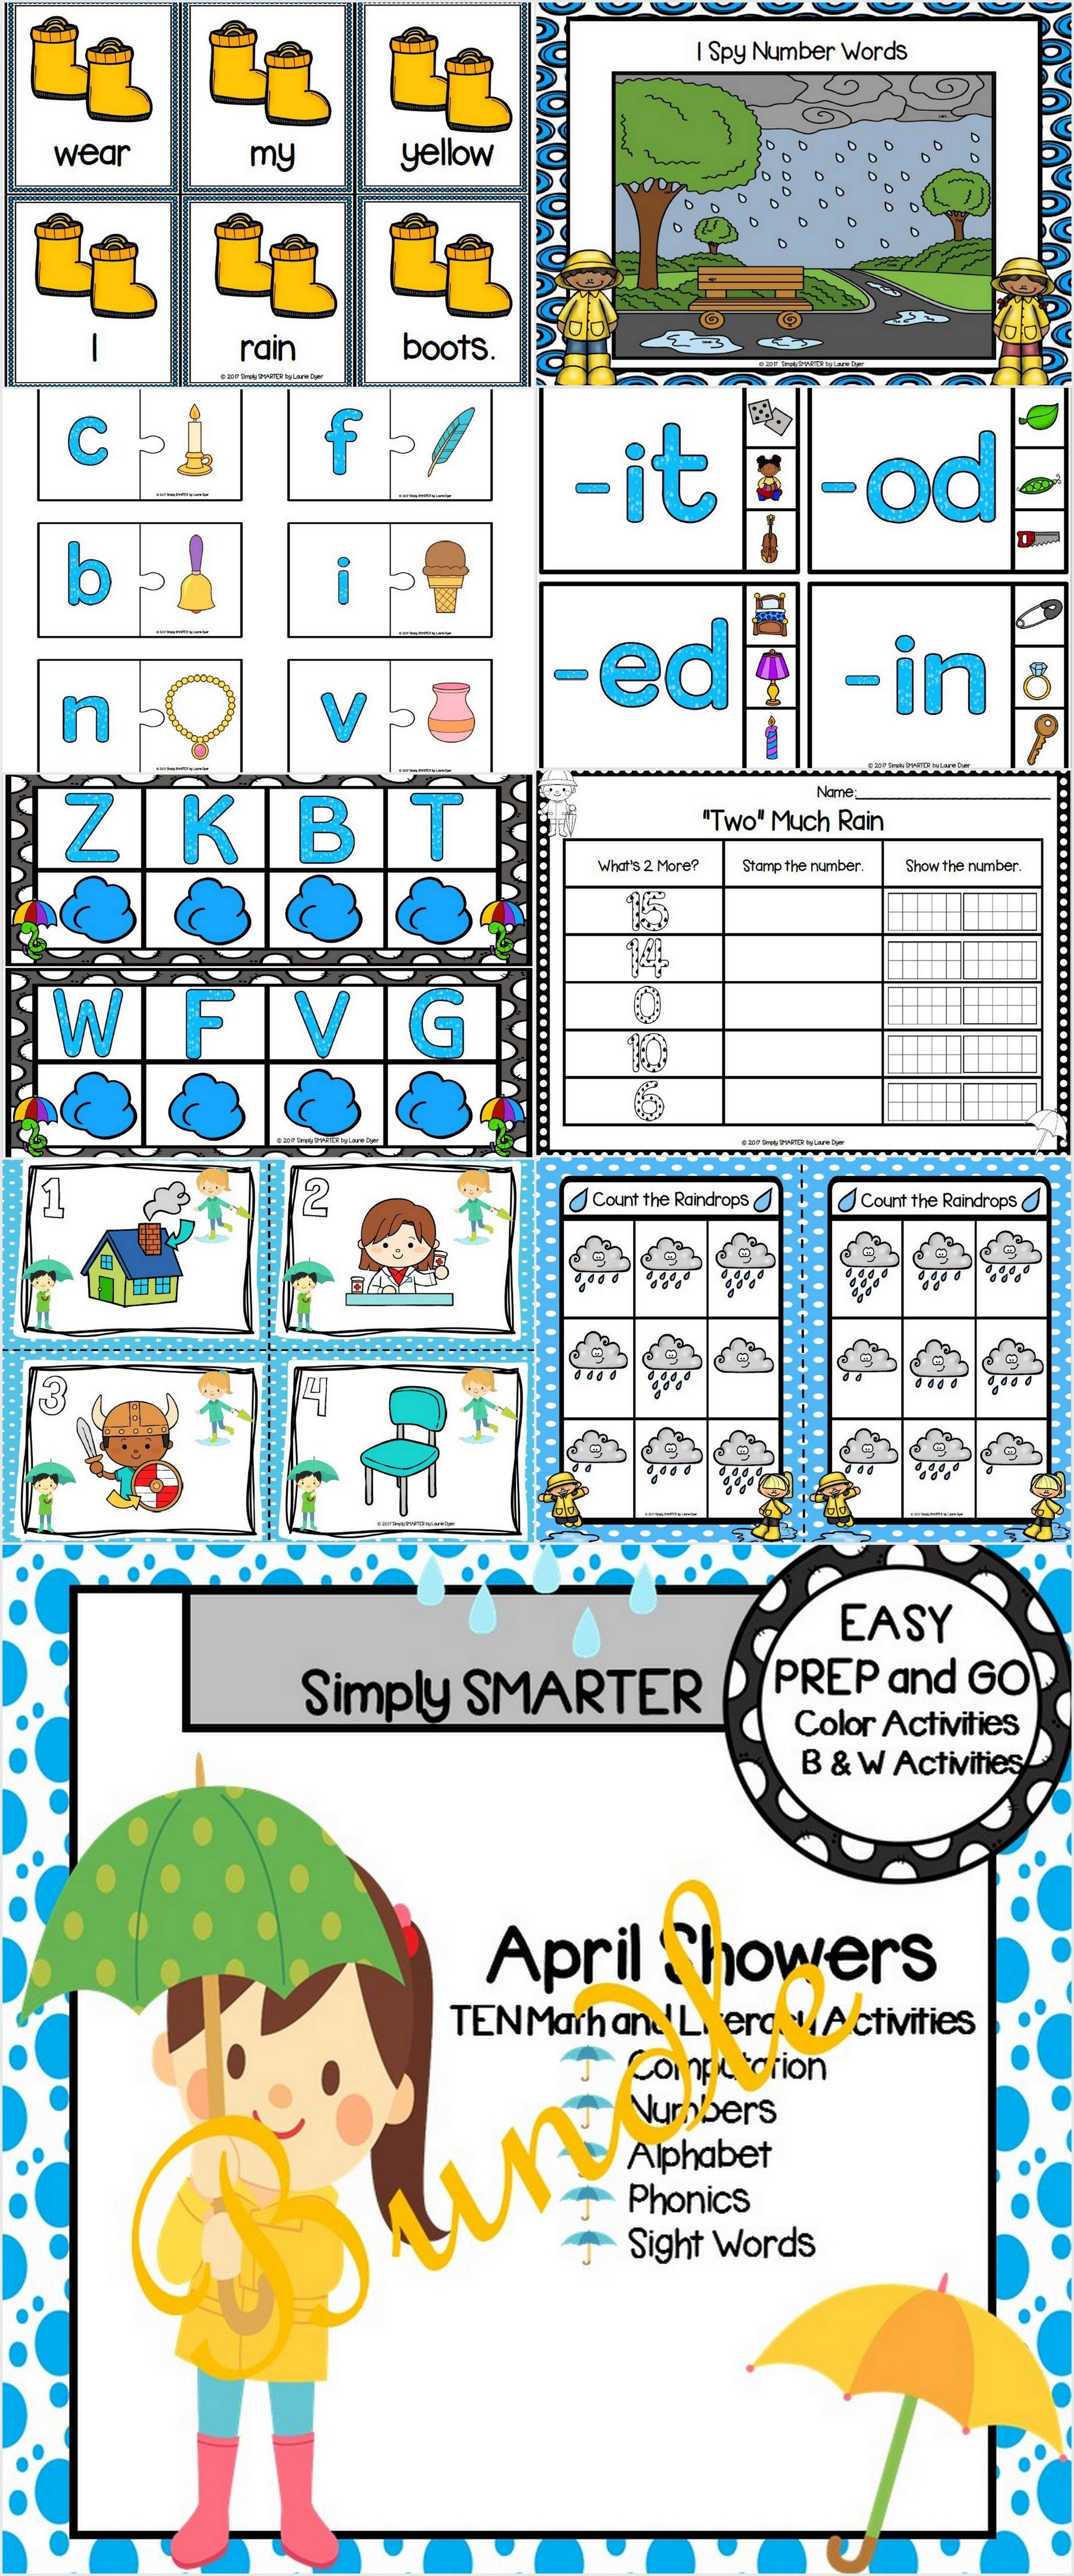 Easy Prep April Showers Math And Literacy Center